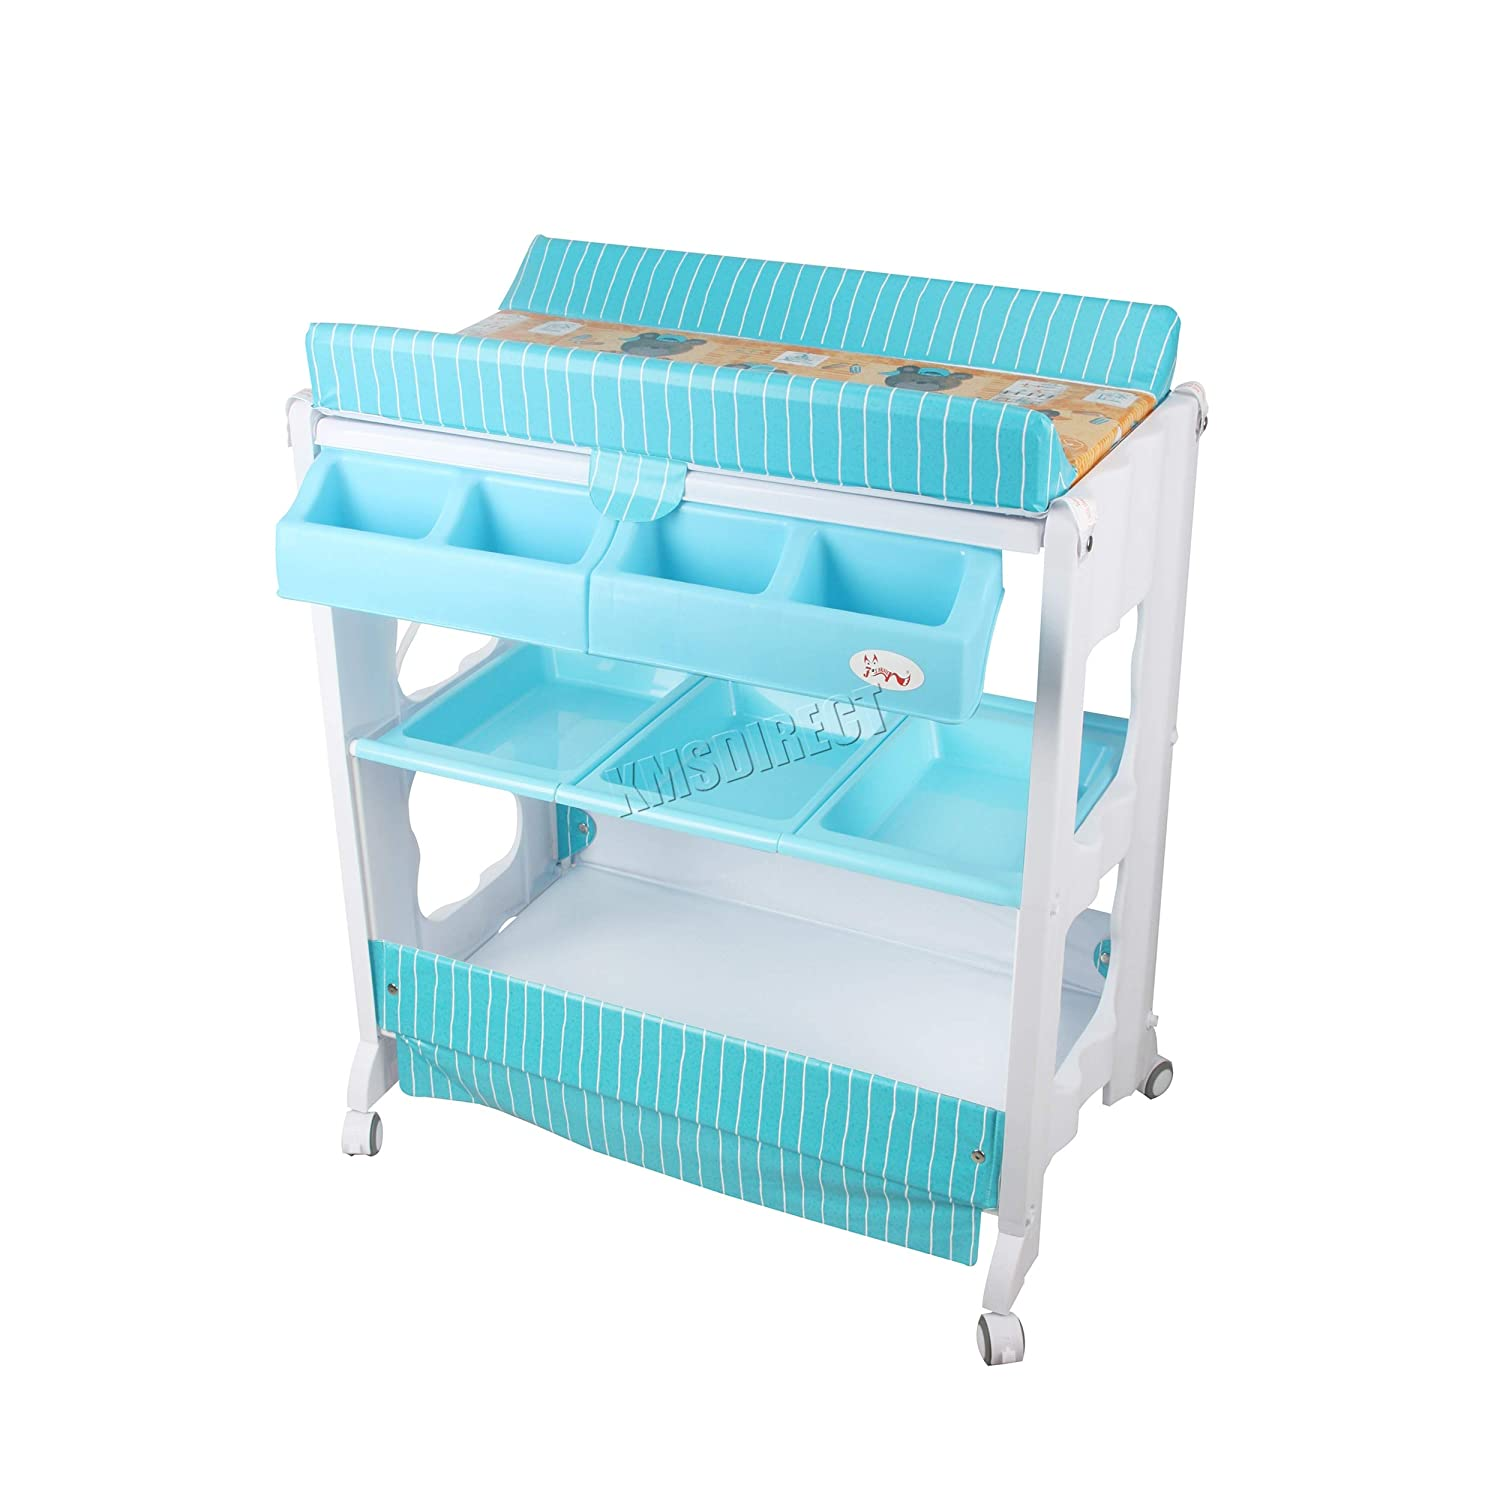 FoxHunter 2 in 1 Baby Bath Changing Dresser Station Table Unit Storage Towel Rail Infant Nursery Trays Furniture BCT02 Blue KMS BCTW01